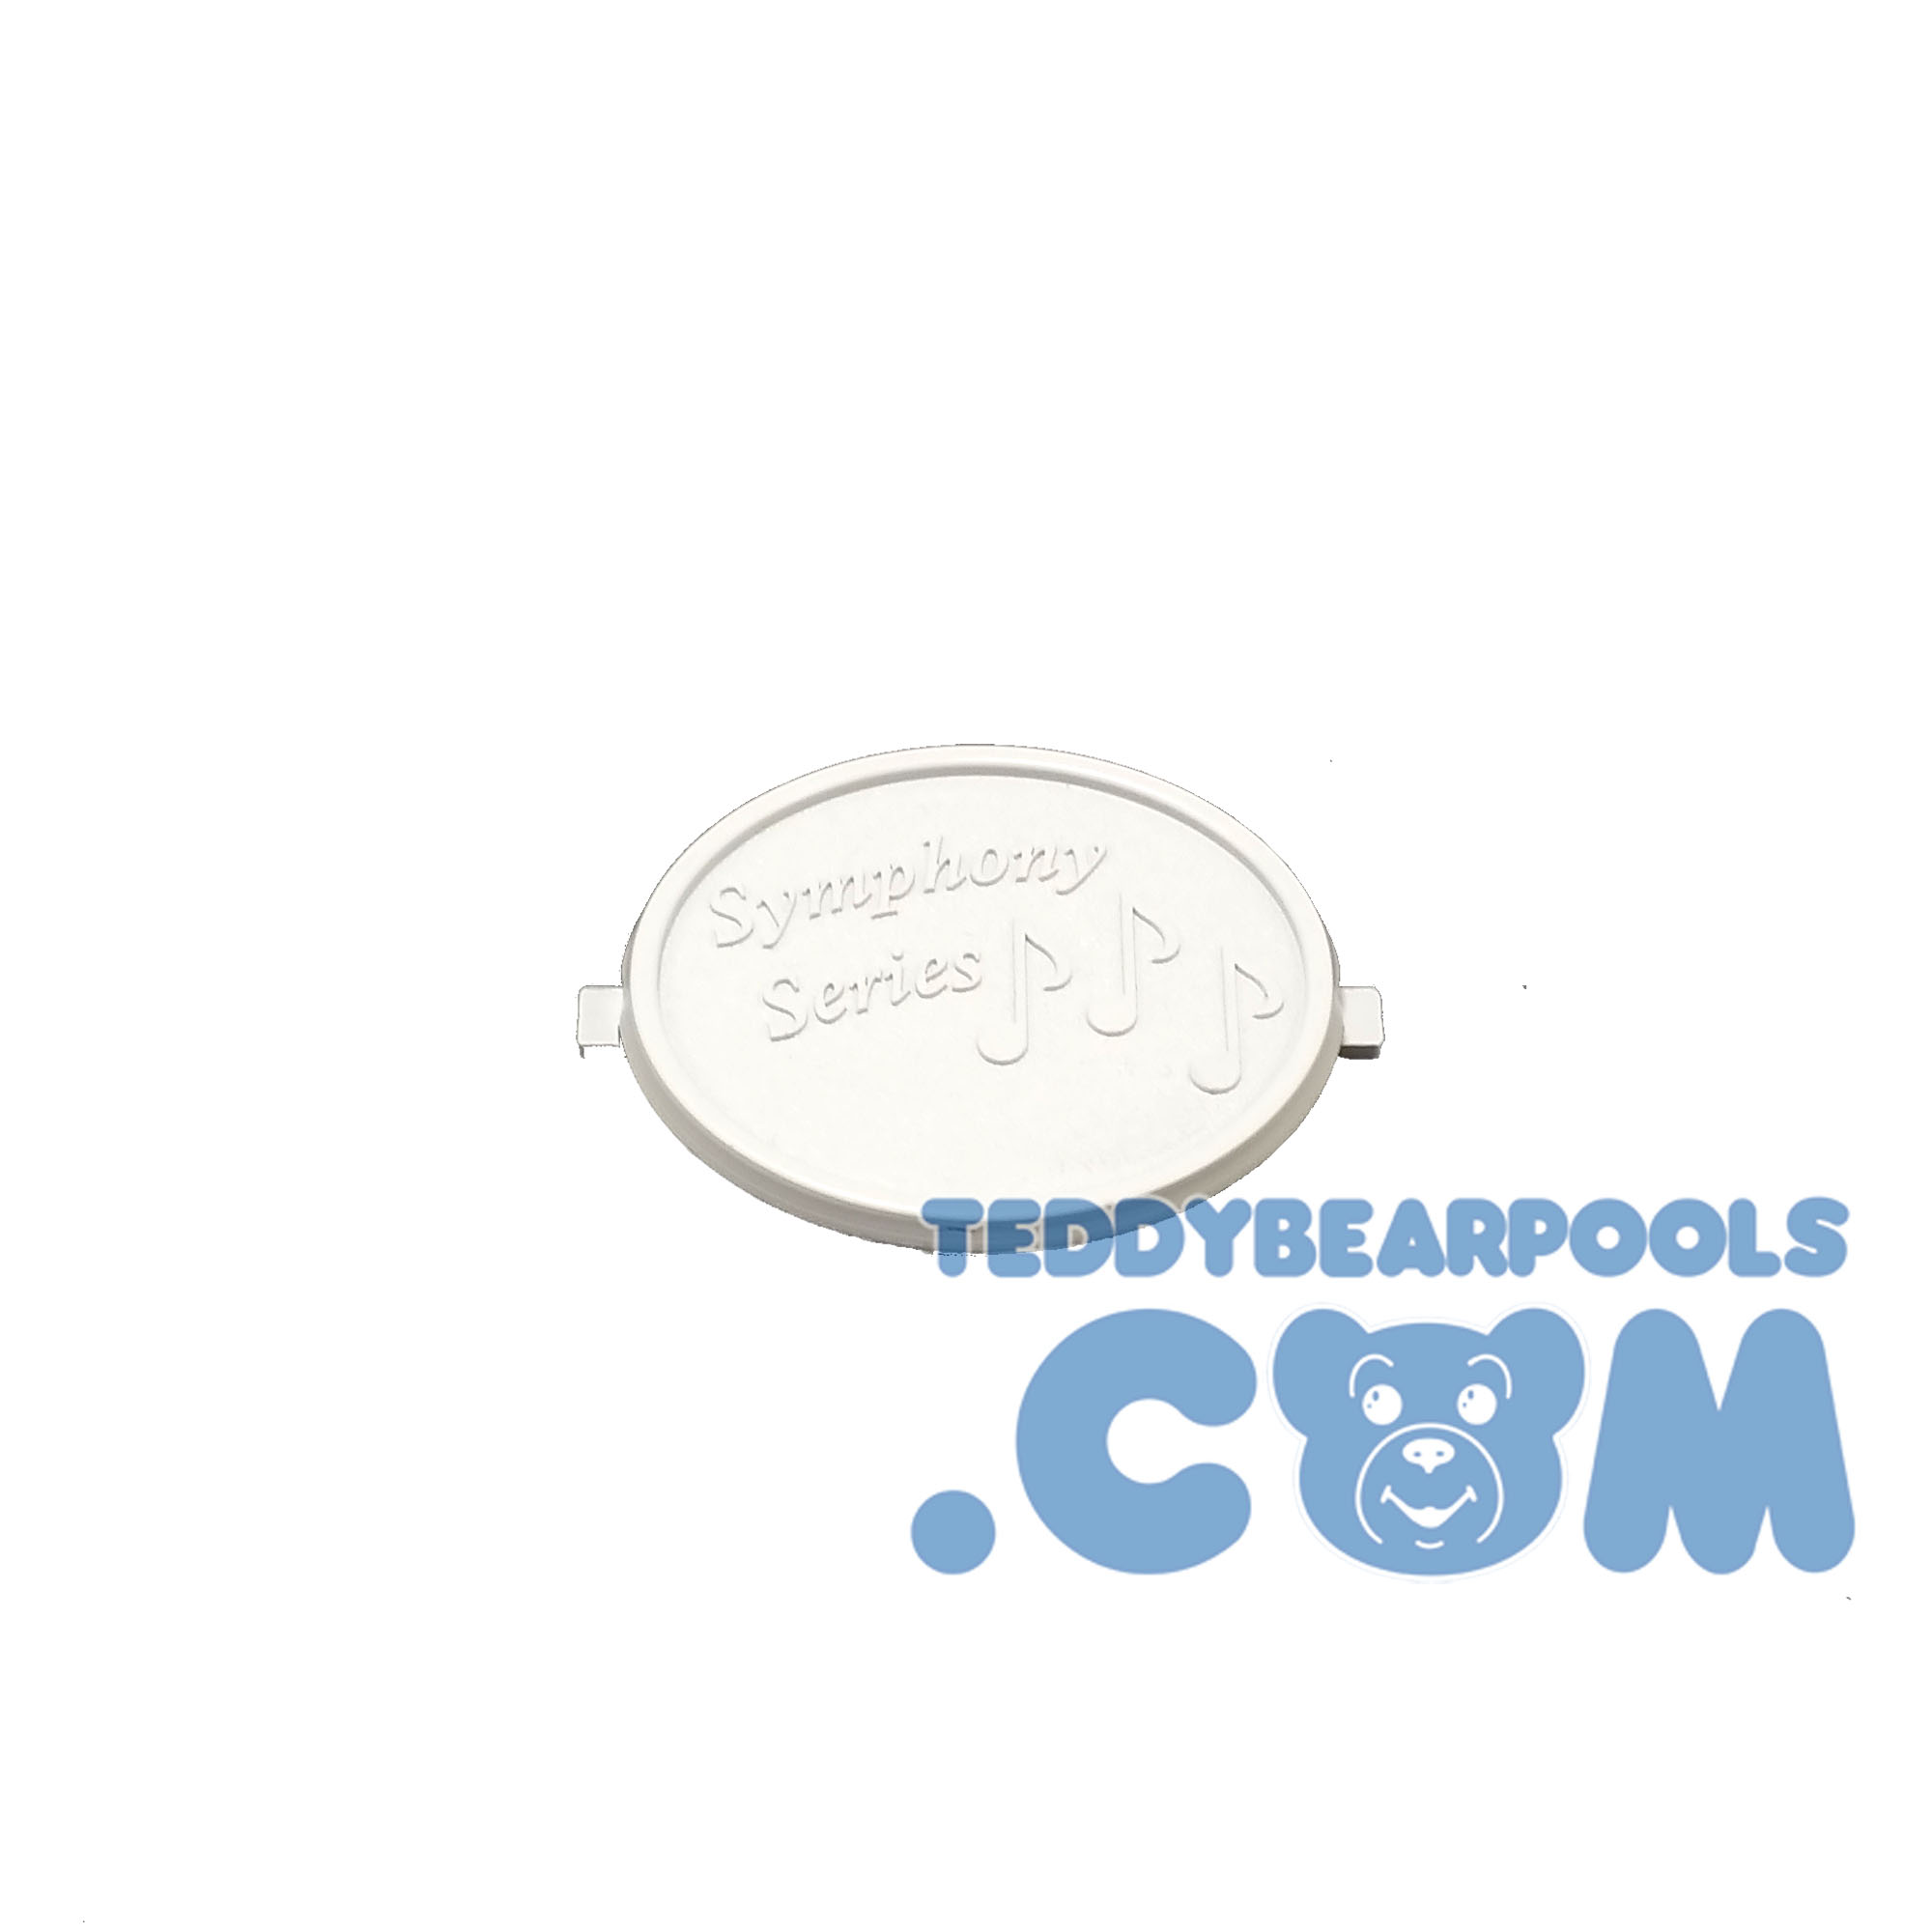 Coping Cover Cap T4170 33 For Symphoney Series Pool Gray